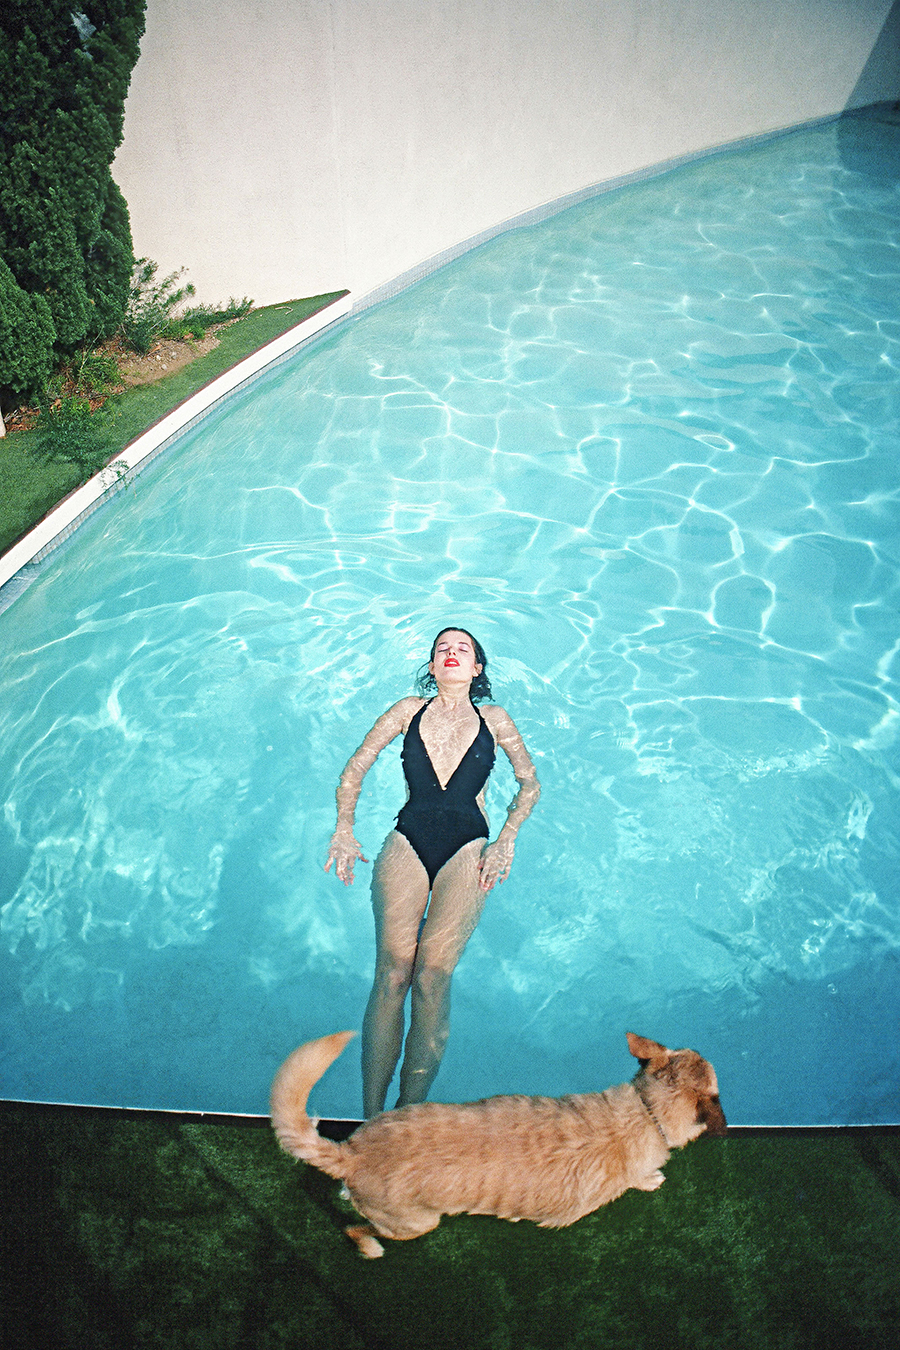 ©Willy Spiller, Swimming Cindy, Los Angeles, 1977-1985, Archival Pigment Print, 65 x 47 cm, Edition 5 & 2 AP